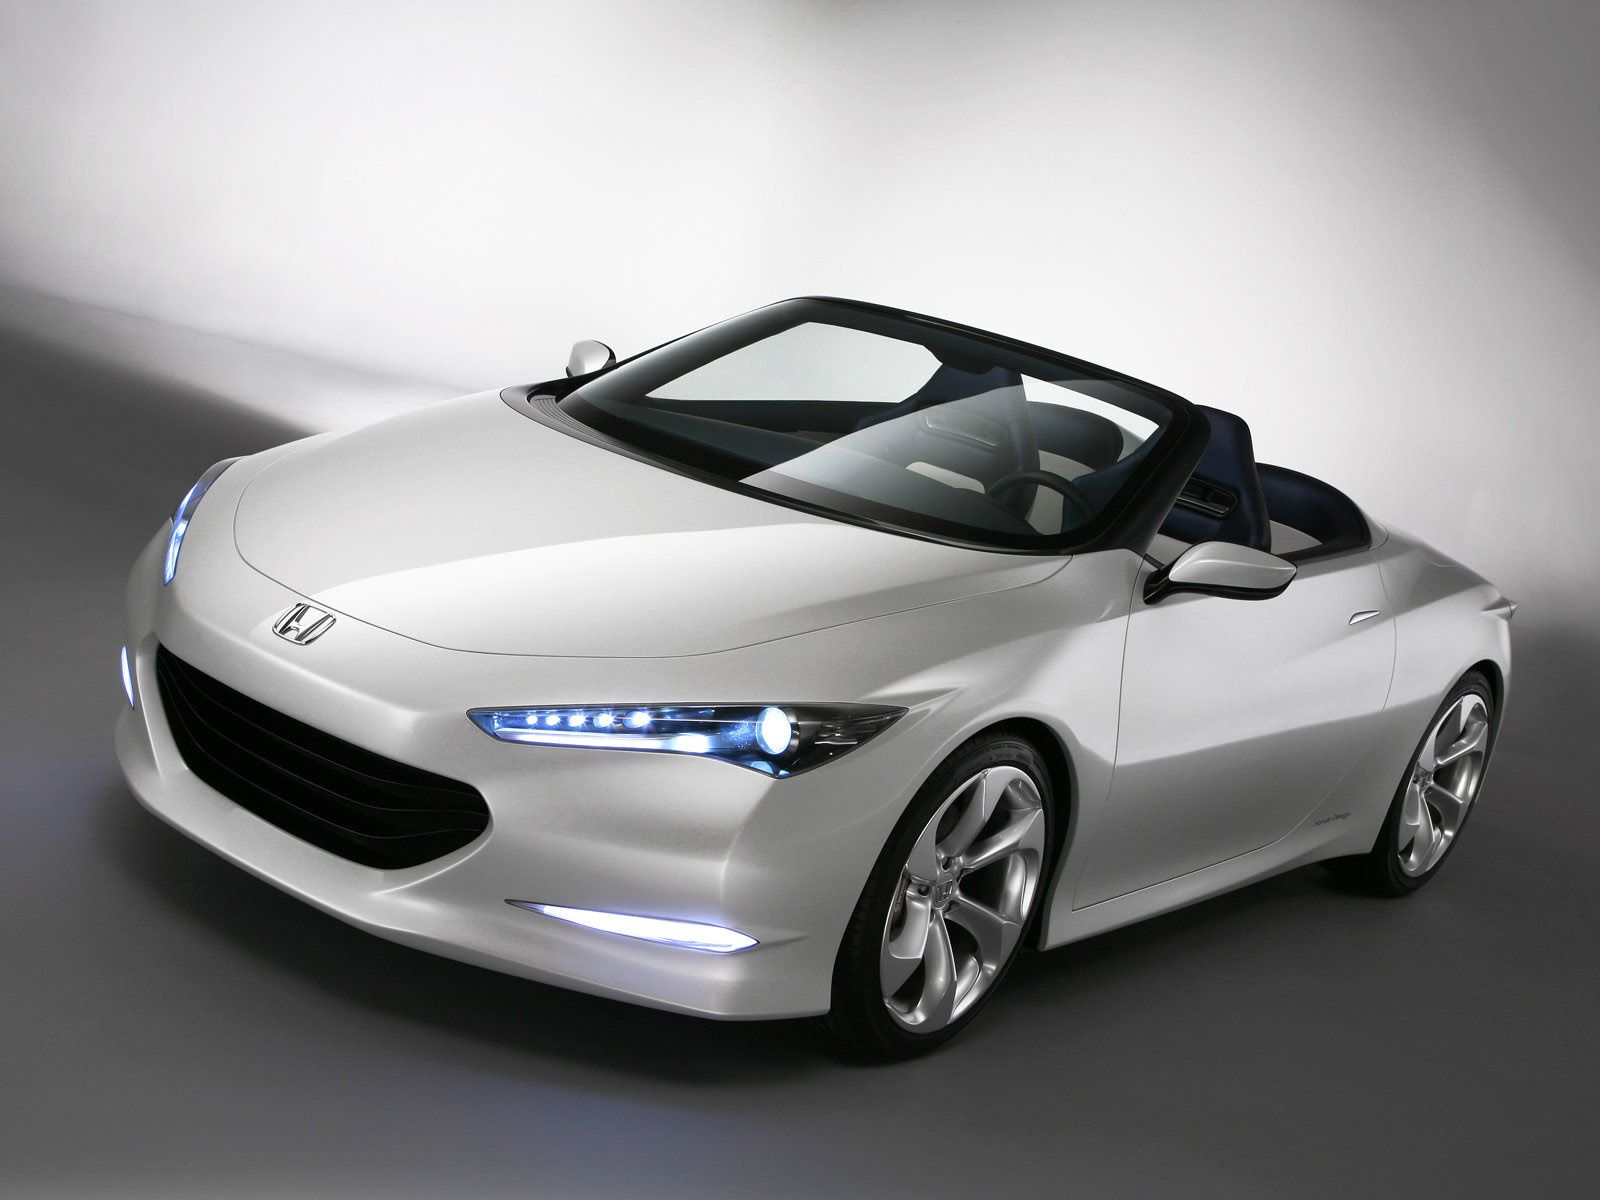 Exceptional HD Wallpaper For Backgrounds Honda OSM Concept 2008 Car Tuning Honda OSM  Concept 2008 And ... Home Design Ideas